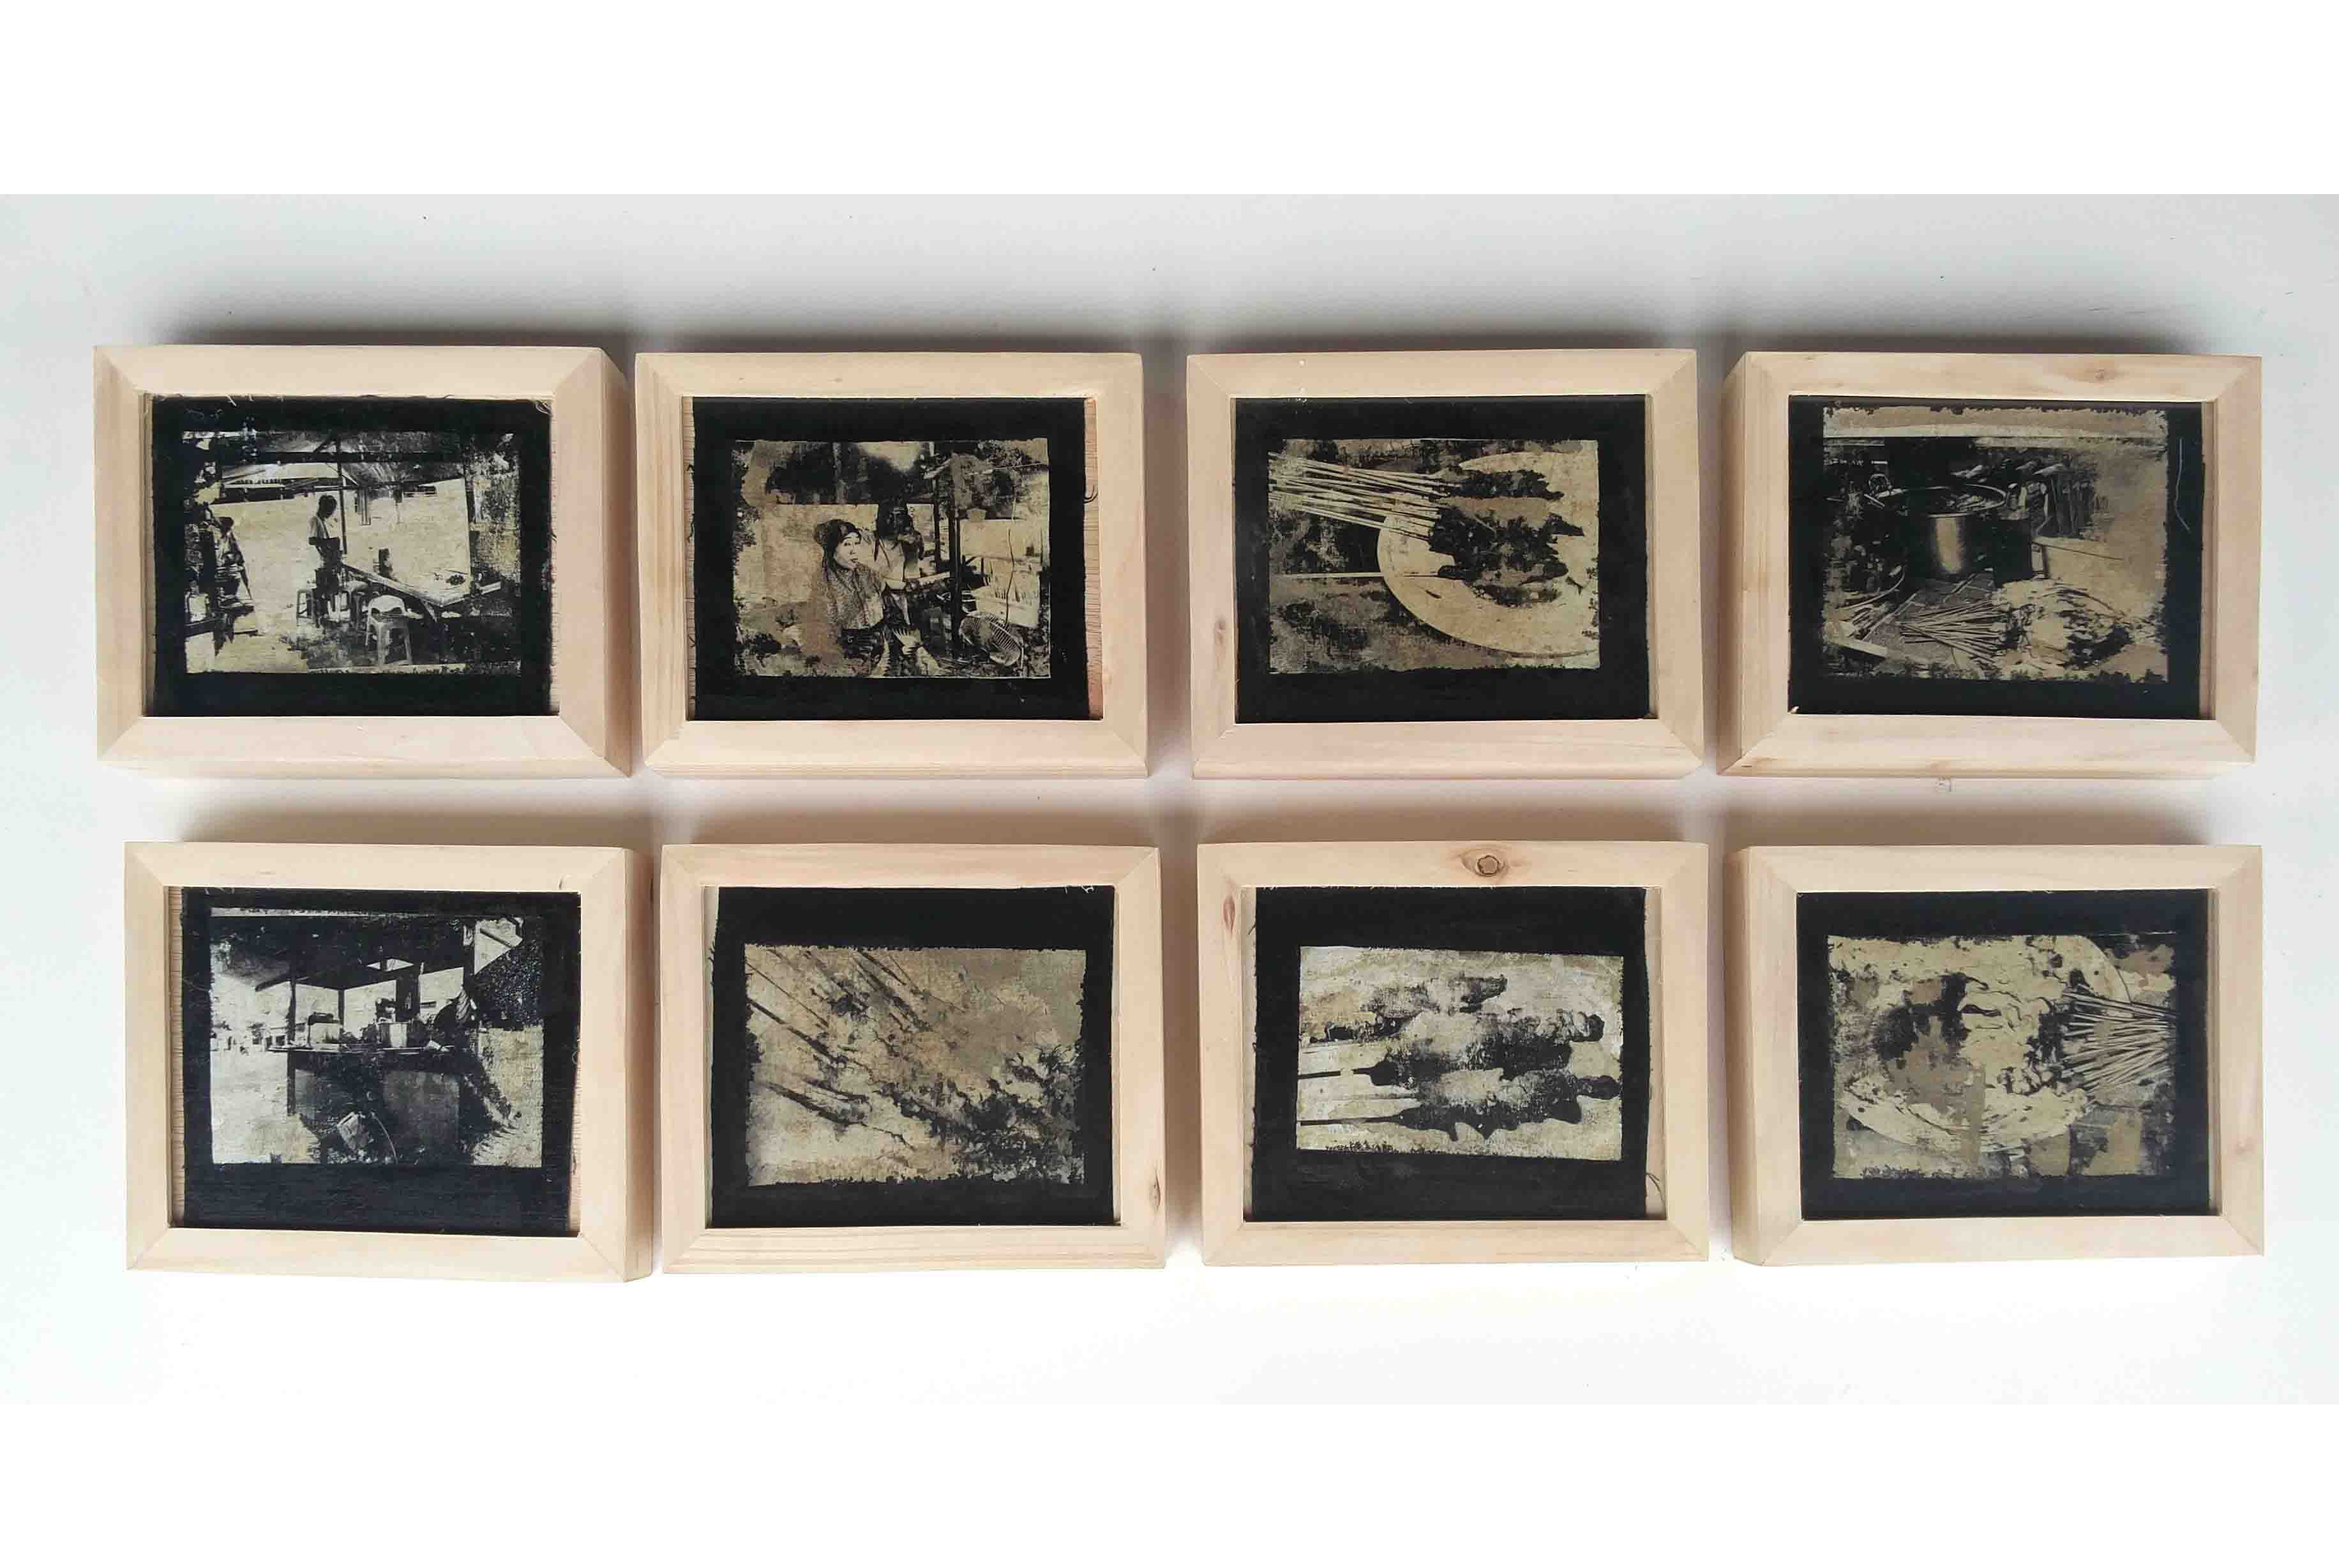 Nyai Ro, @20 x 7 cm, 8 Panels, 2017, Monoprint on Paper and Wooden Frame